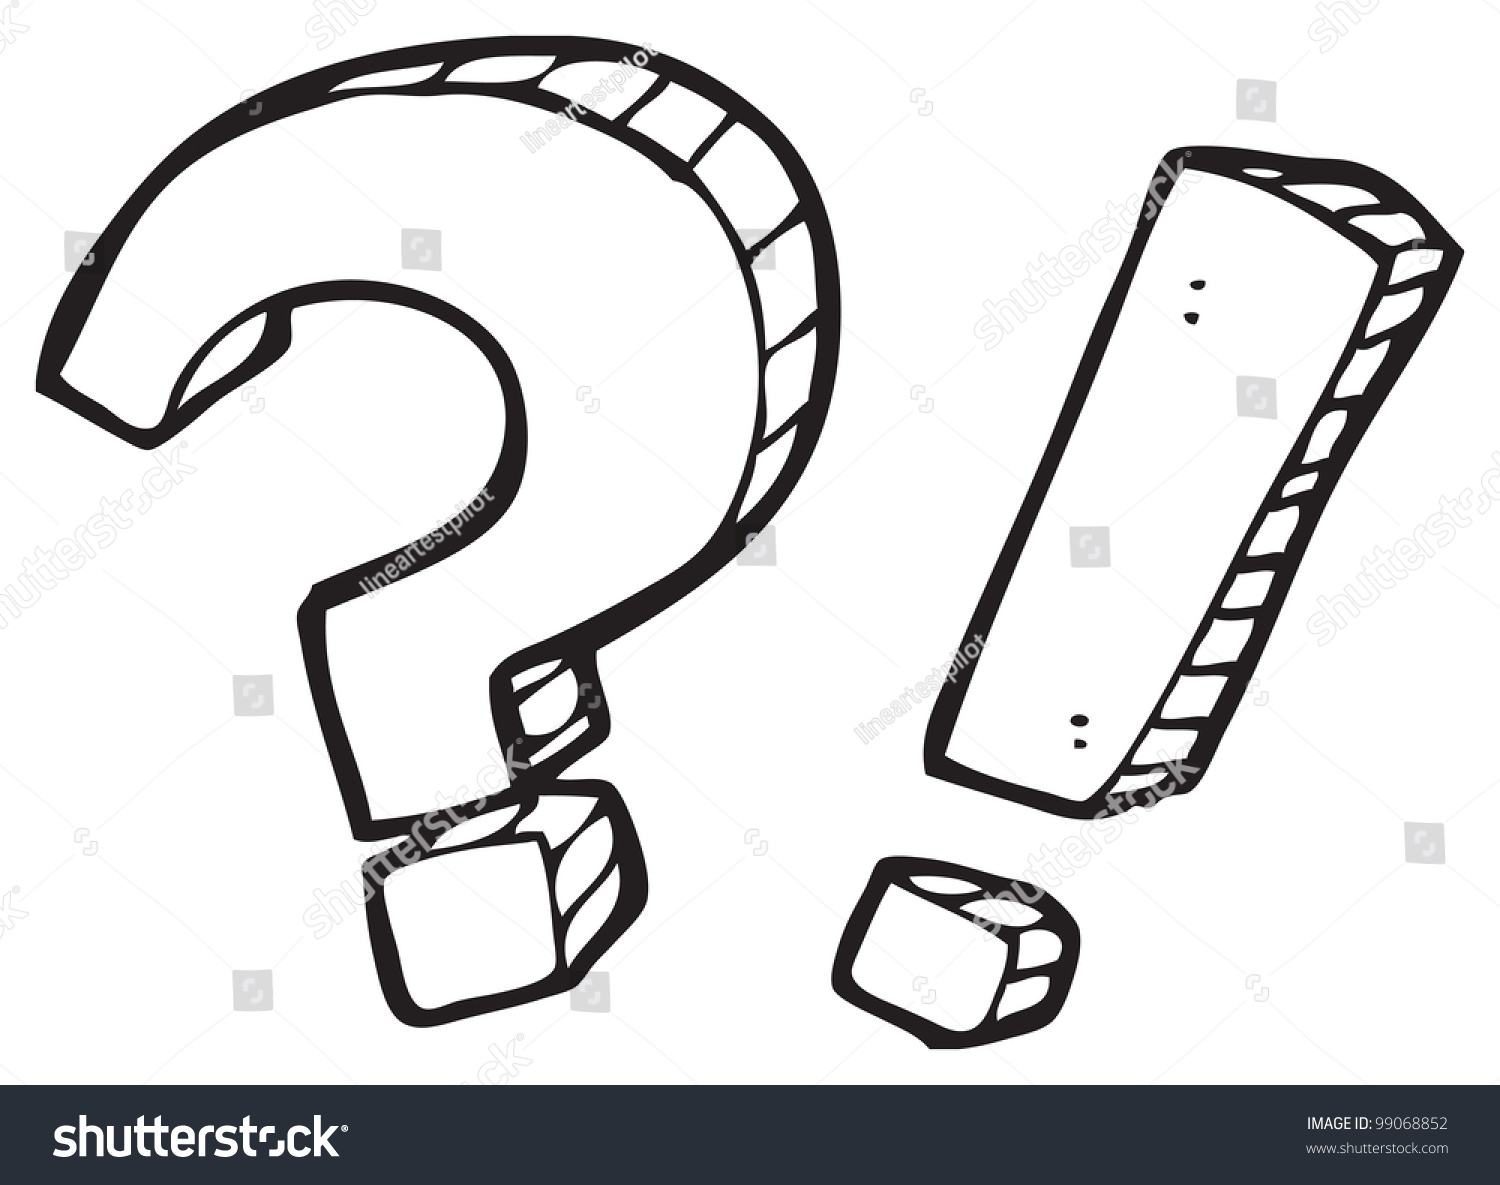 Art Line Questions : Cartoon question mark exclamation stock illustration